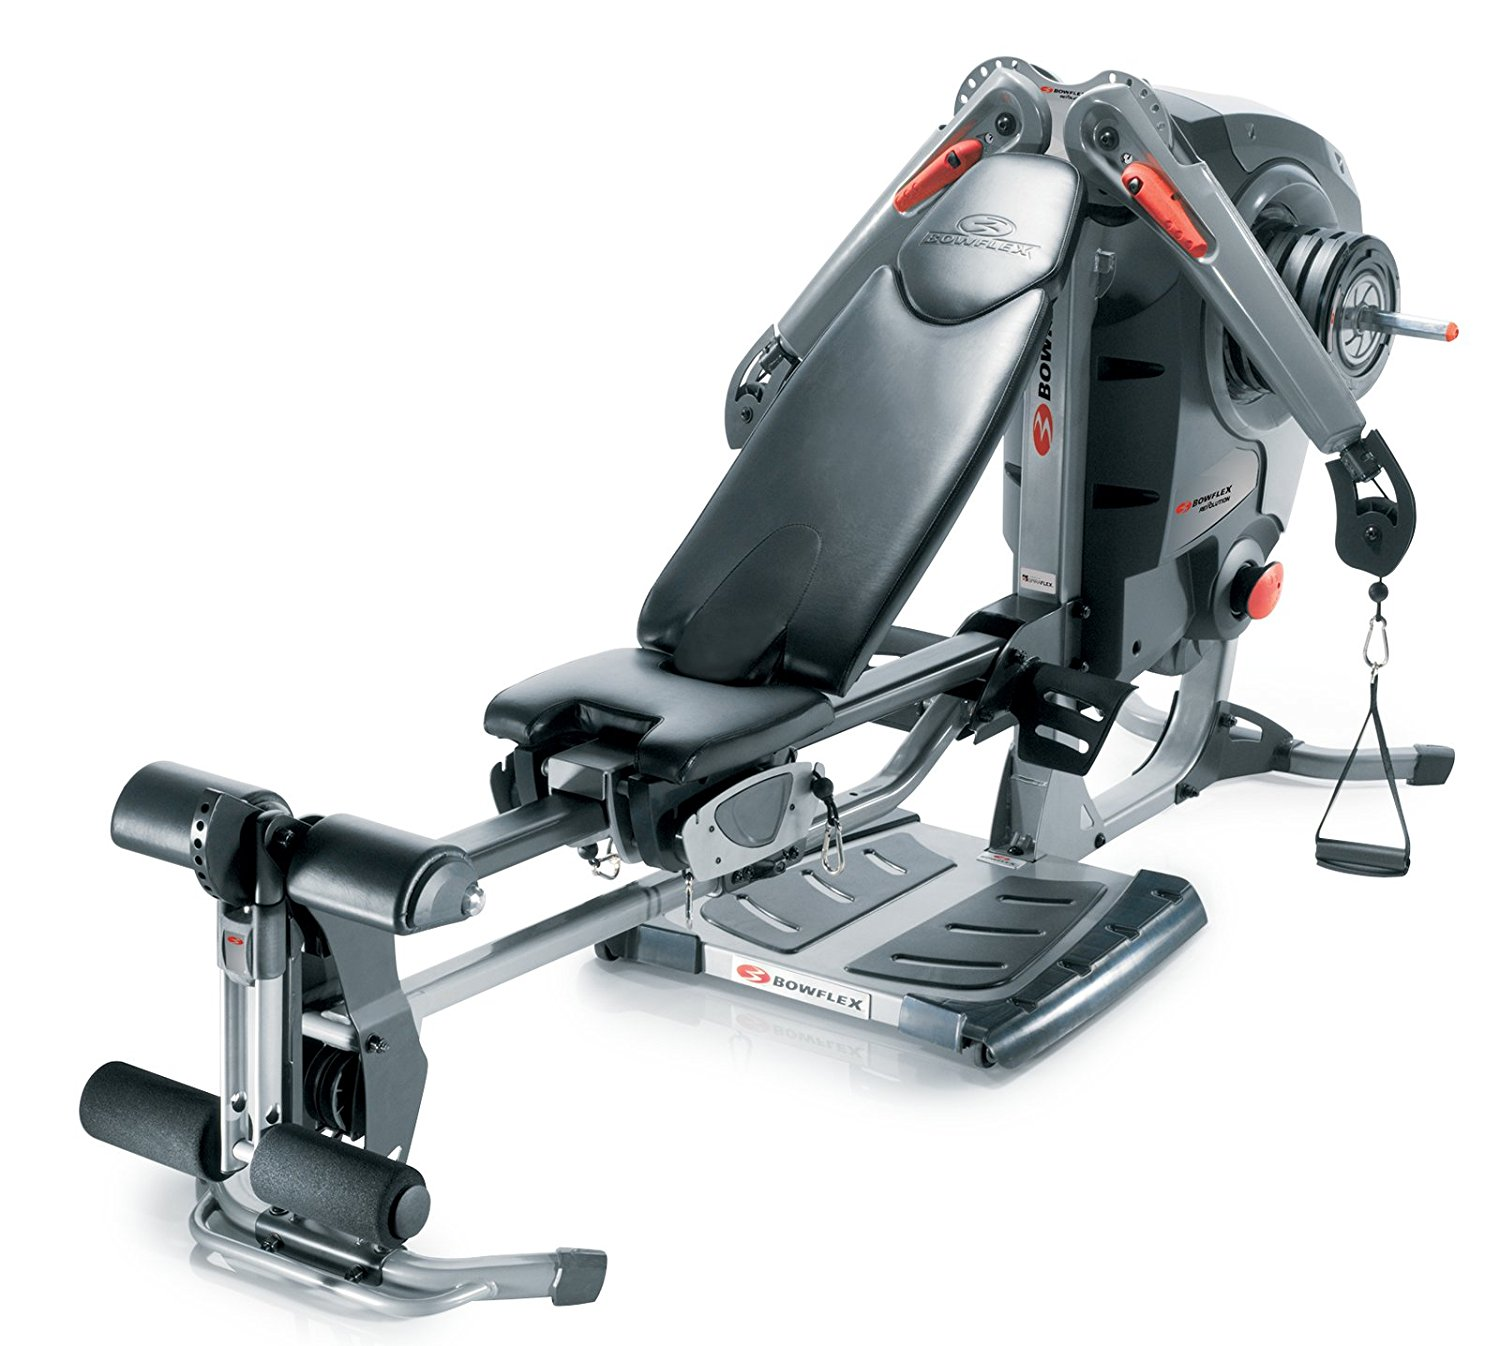 Bowflex Home Gym Review